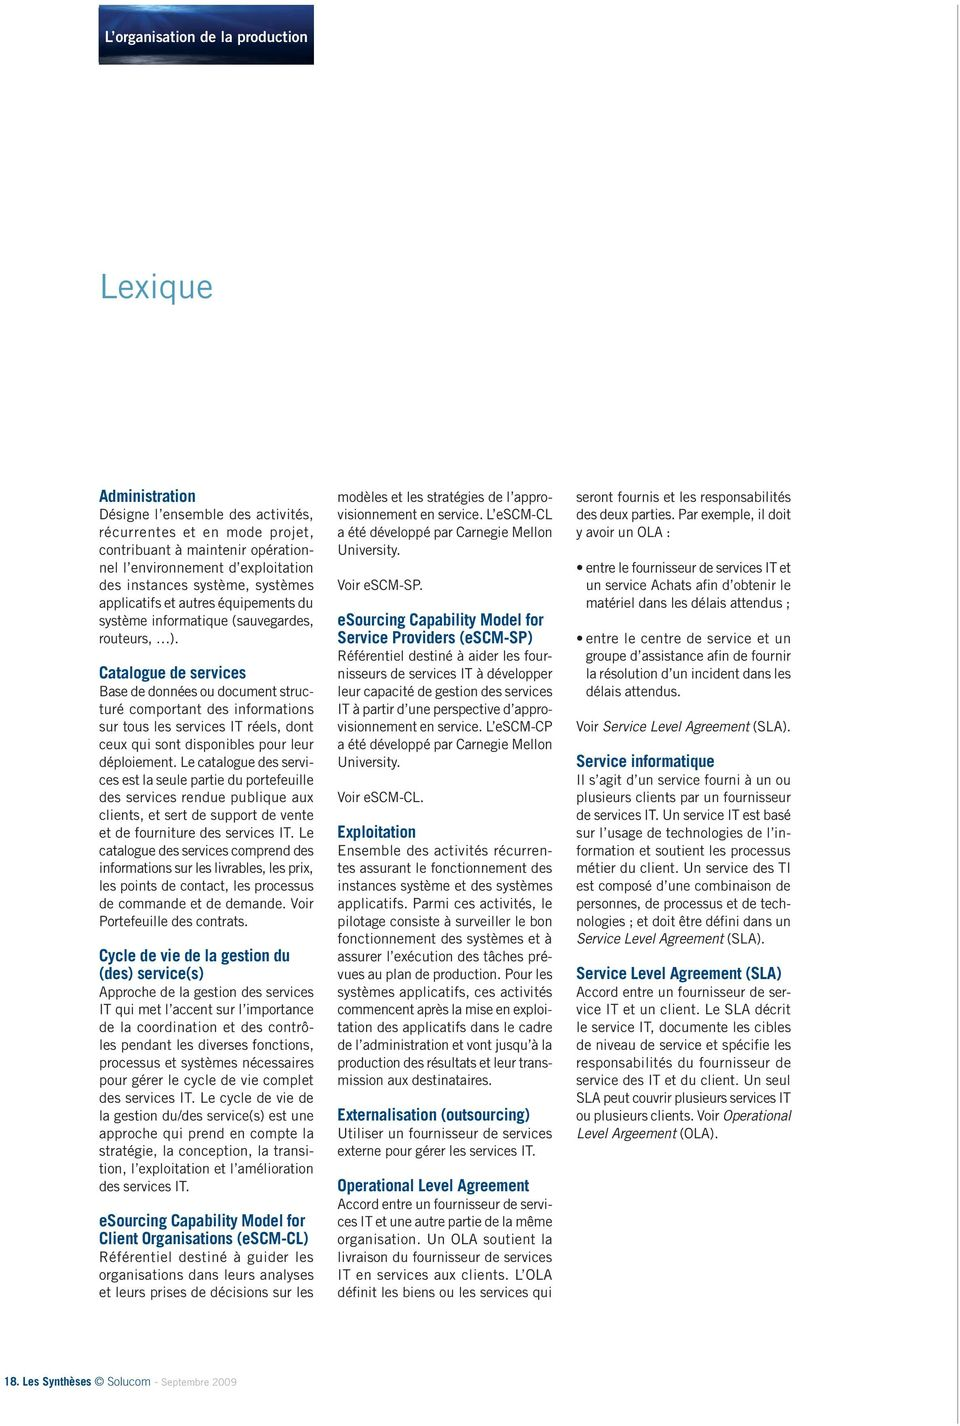 Catalogue de services Base de données ou document structuré comportant des informations sur tous les services IT réels, dont ceux qui sont disponibles pour leur déploiement.